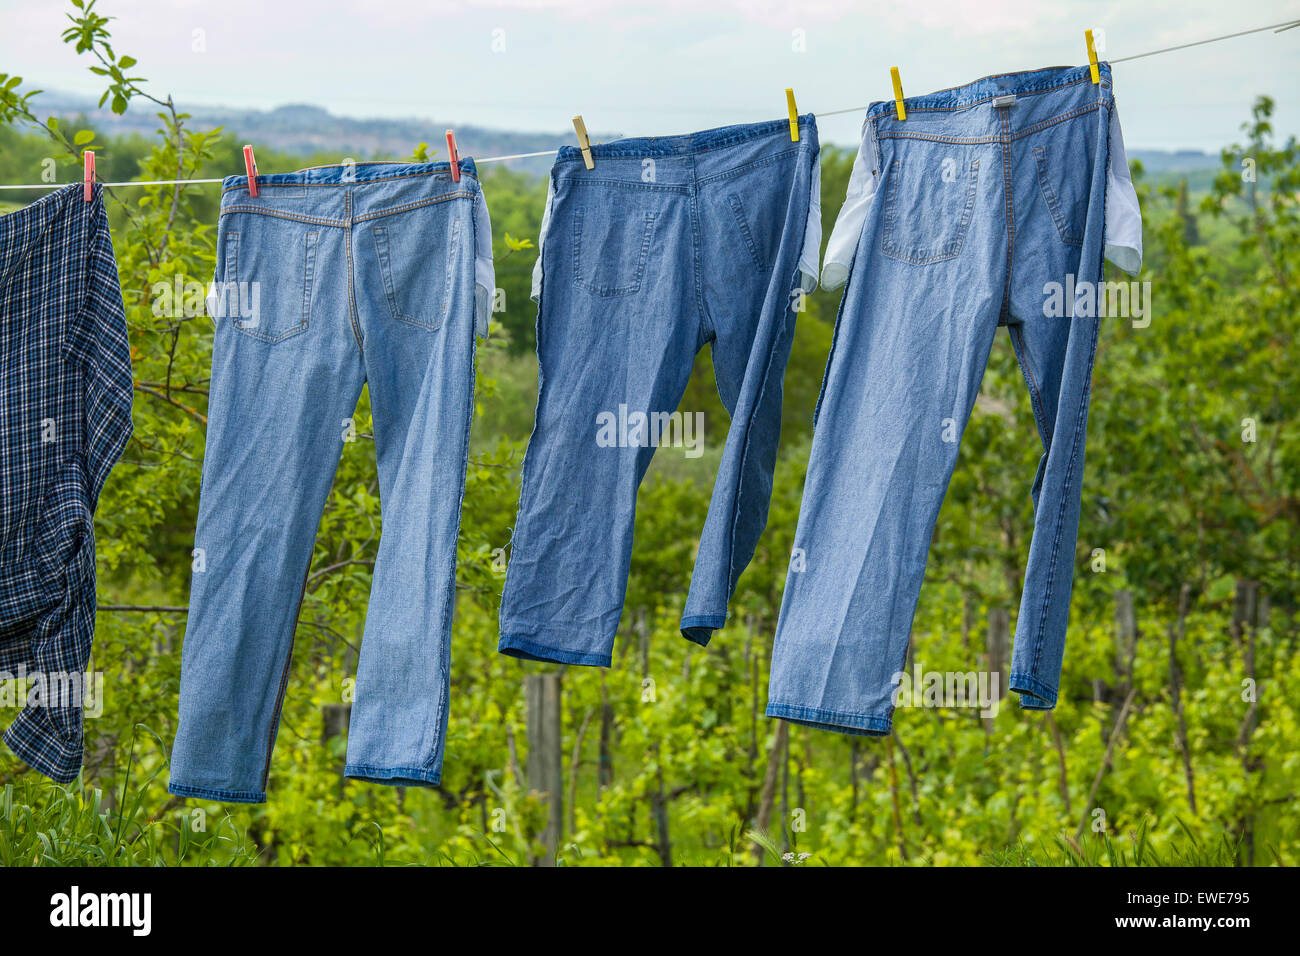 Blue jeans on a clothesline to dry - Stock Image